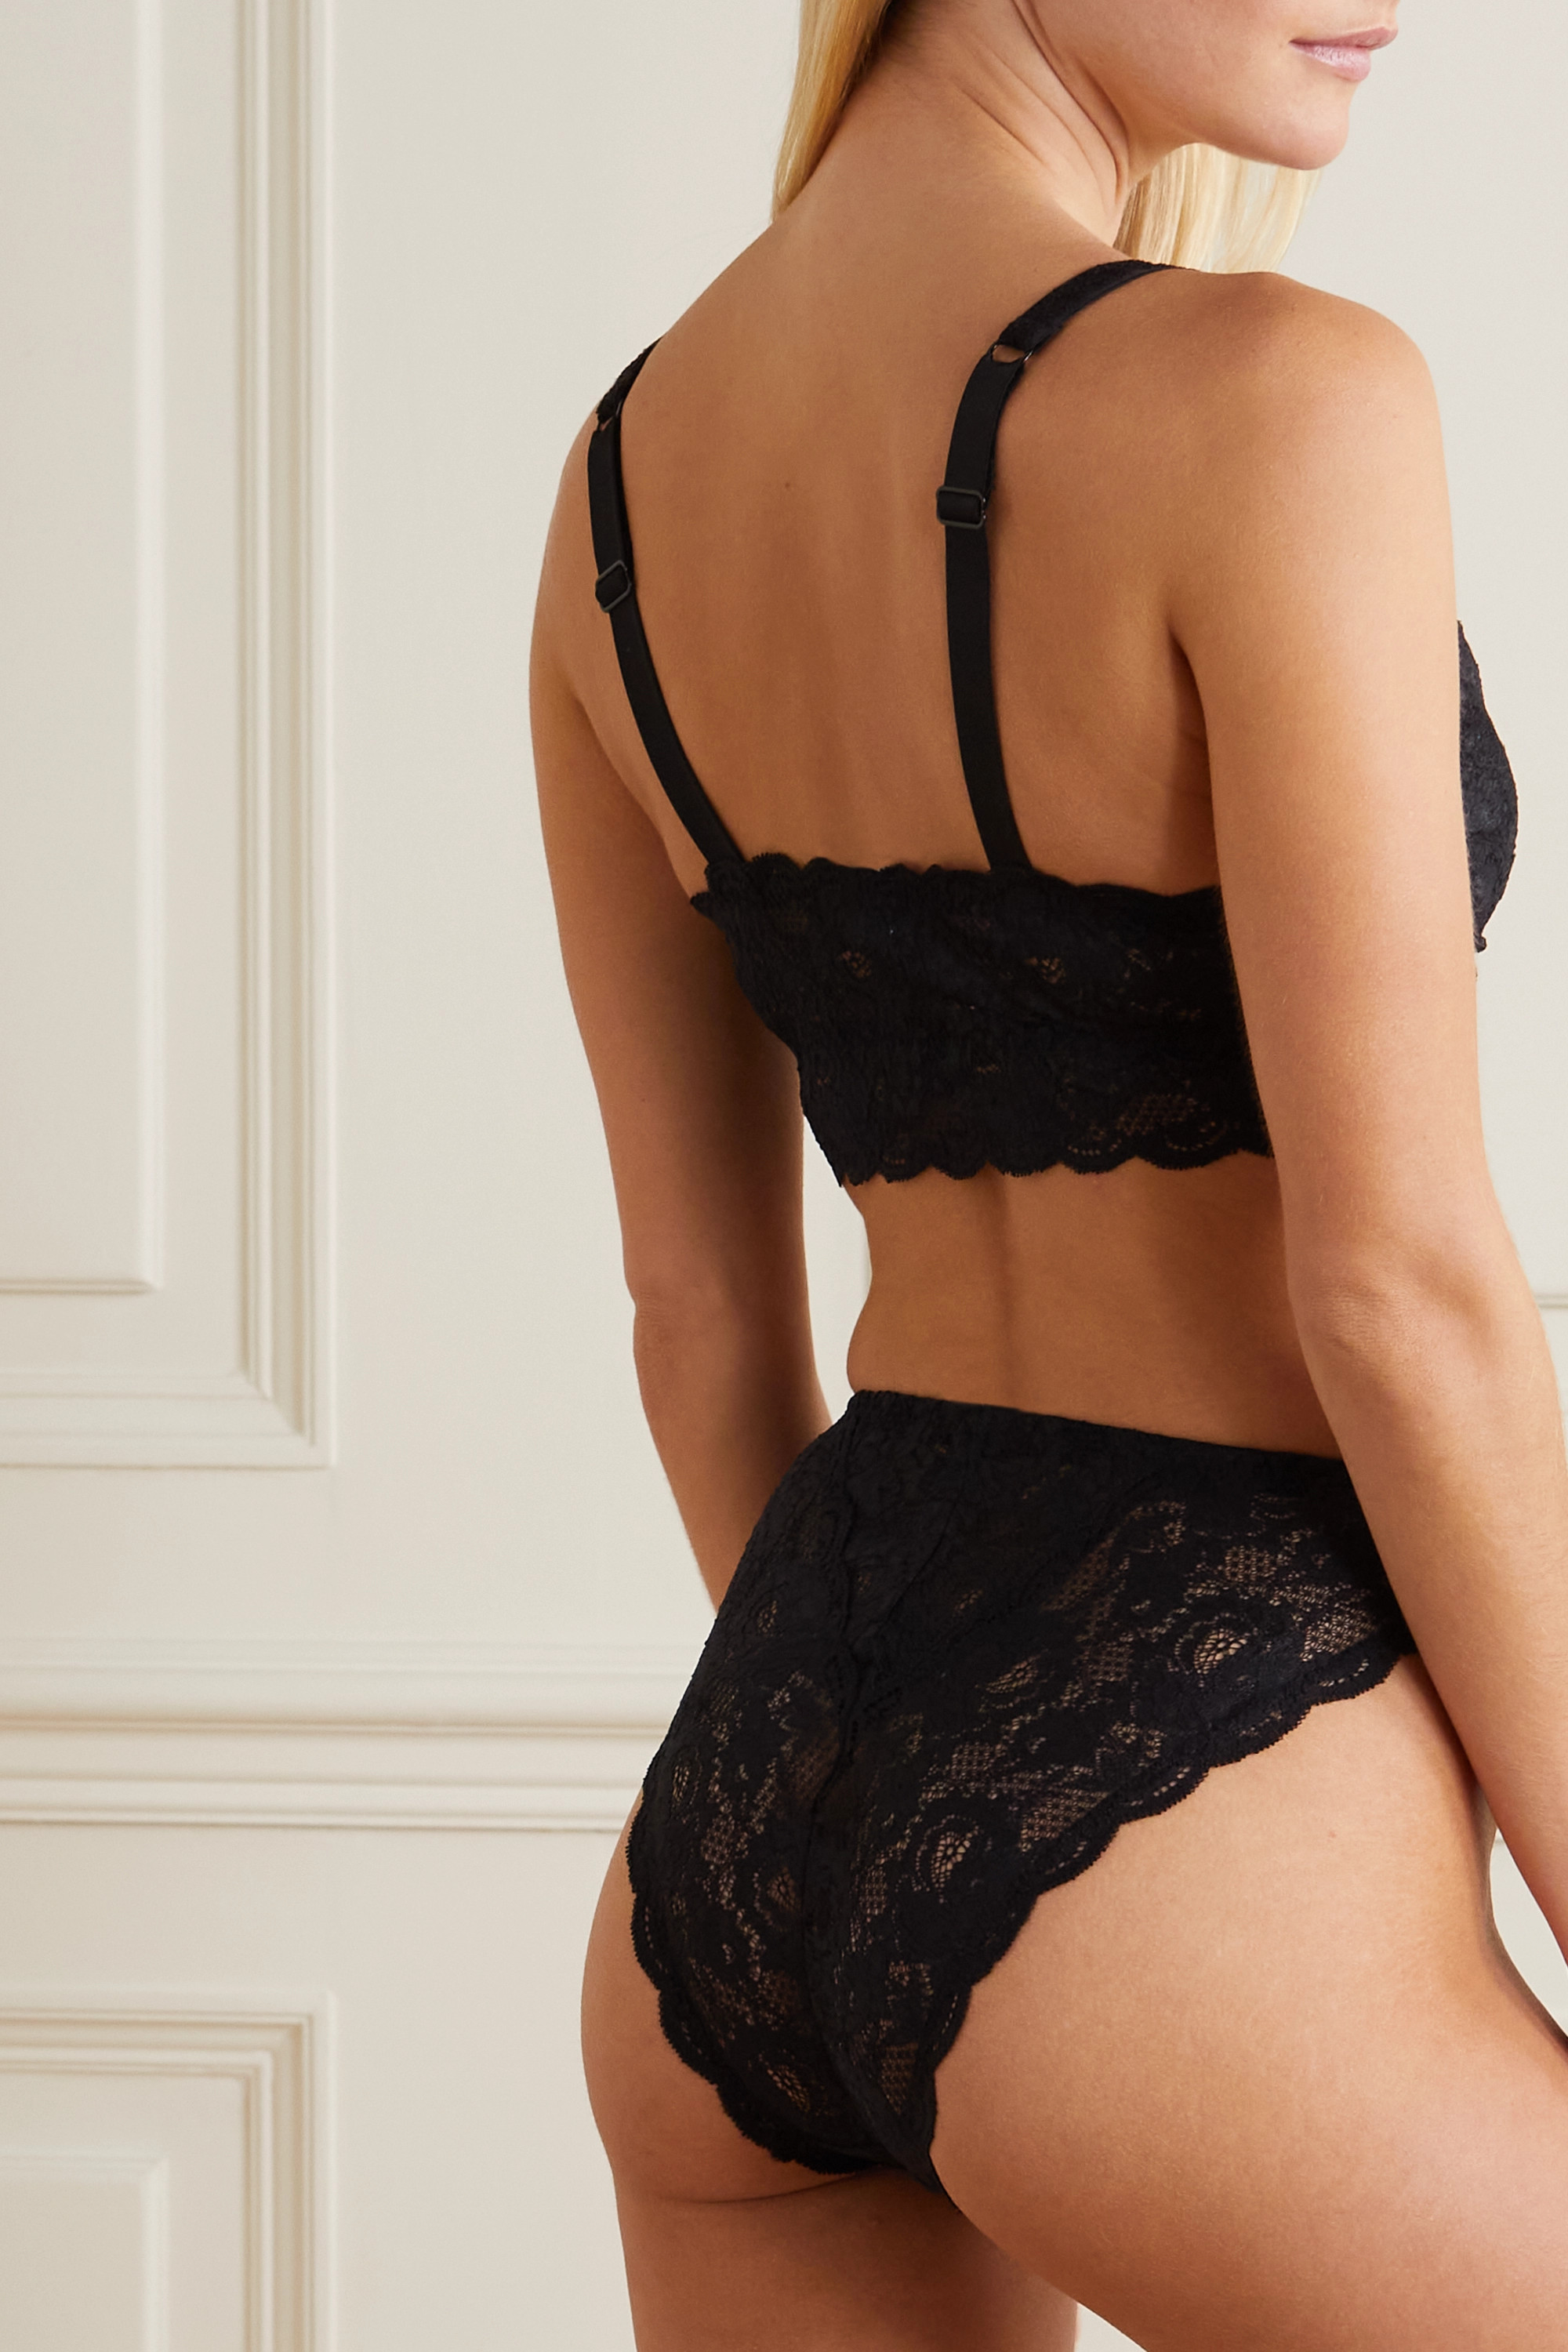 Cosabella Never Say Never India stretch-lace briefs